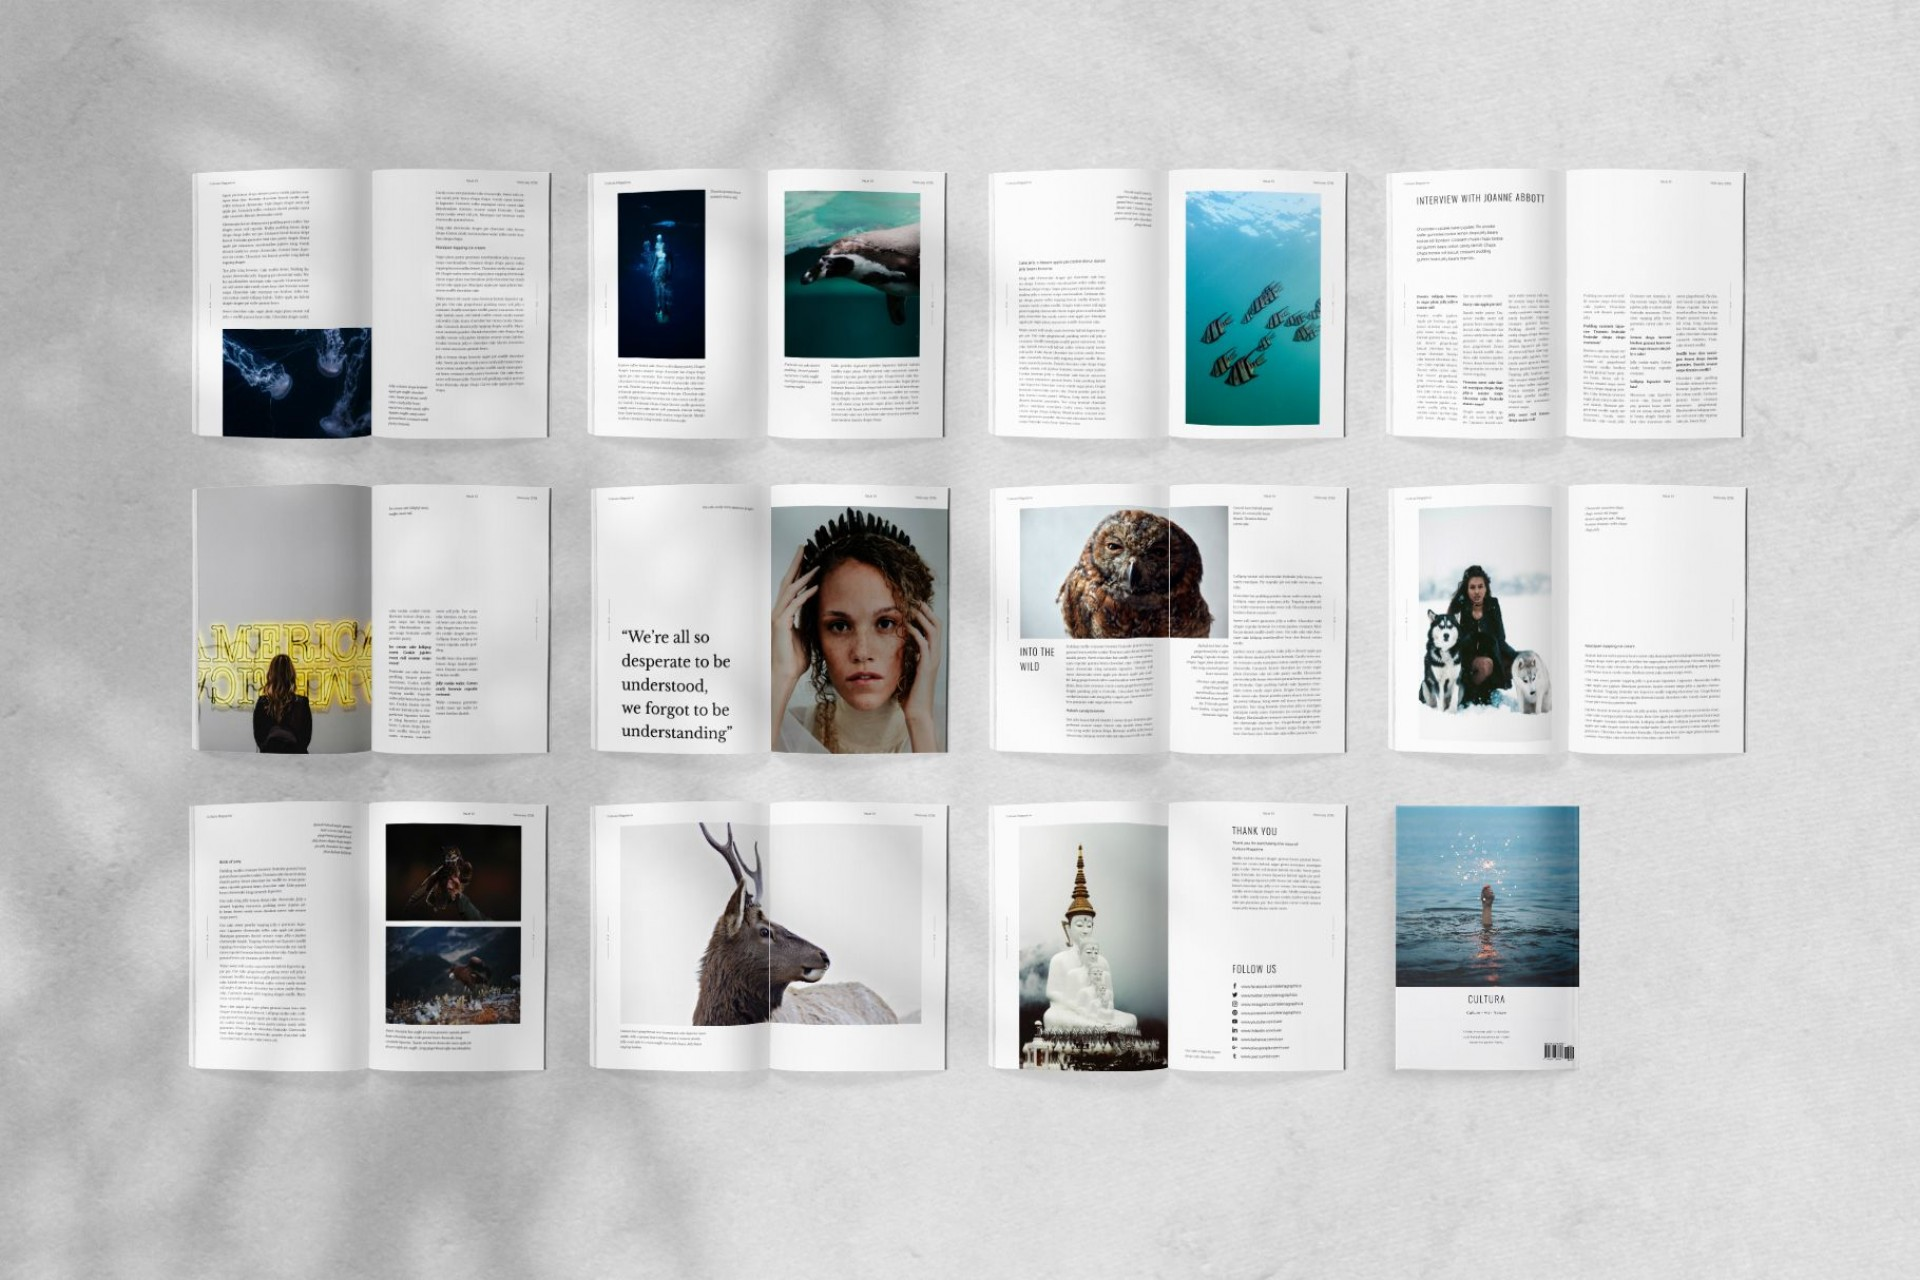 002 Stupendou Free Magazine Layout Template Highest Quality  Templates For Word Microsoft Powerpoint1920